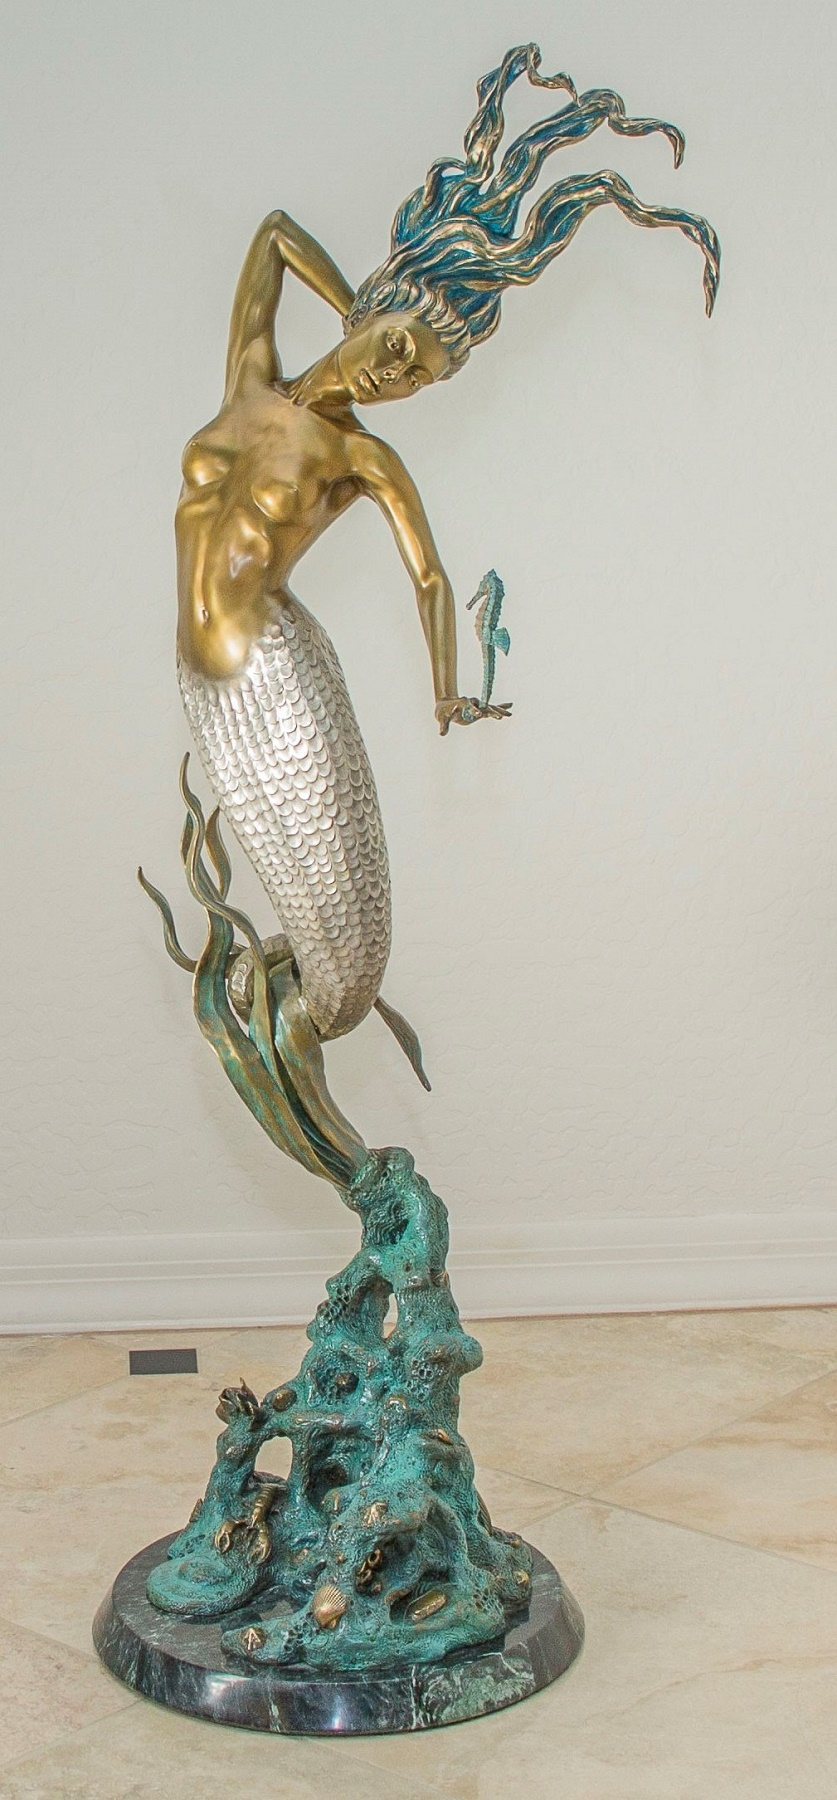 Wonders of the Deep Bronze Sculpture 39 in